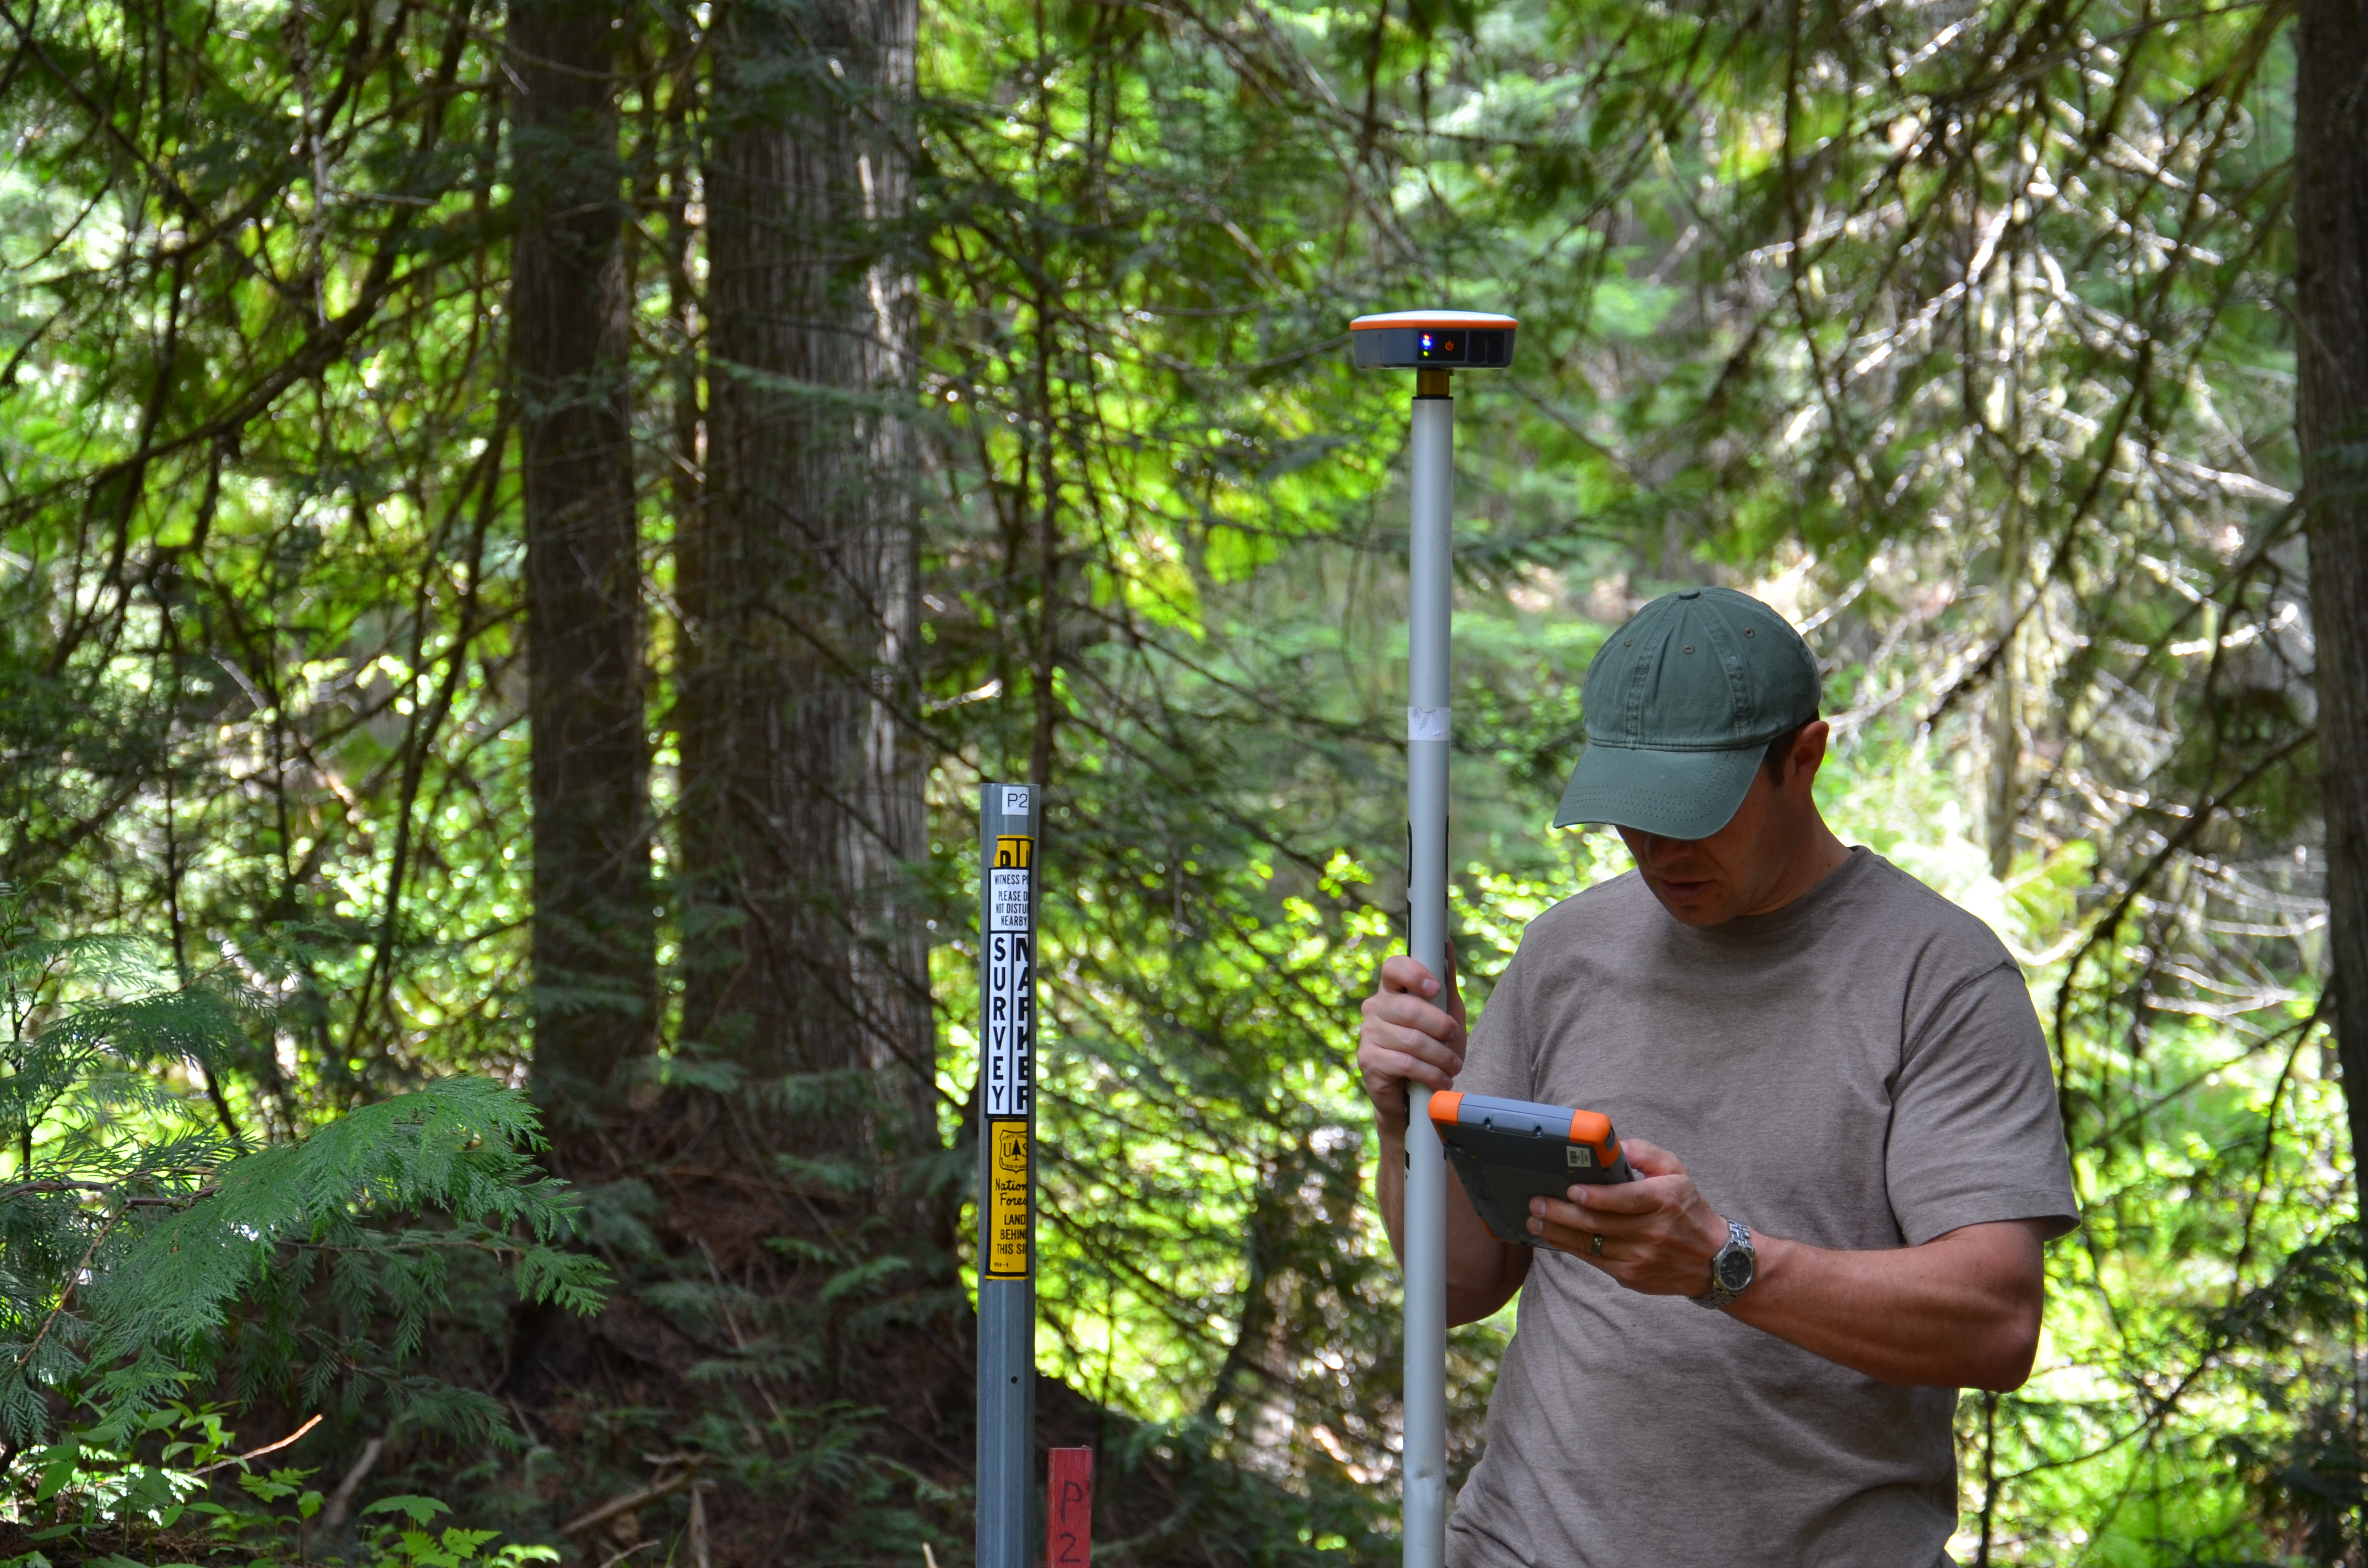 The Geode Sub-meter GPS Receiver Put to the Test Under Dense Forest Tree Canopy